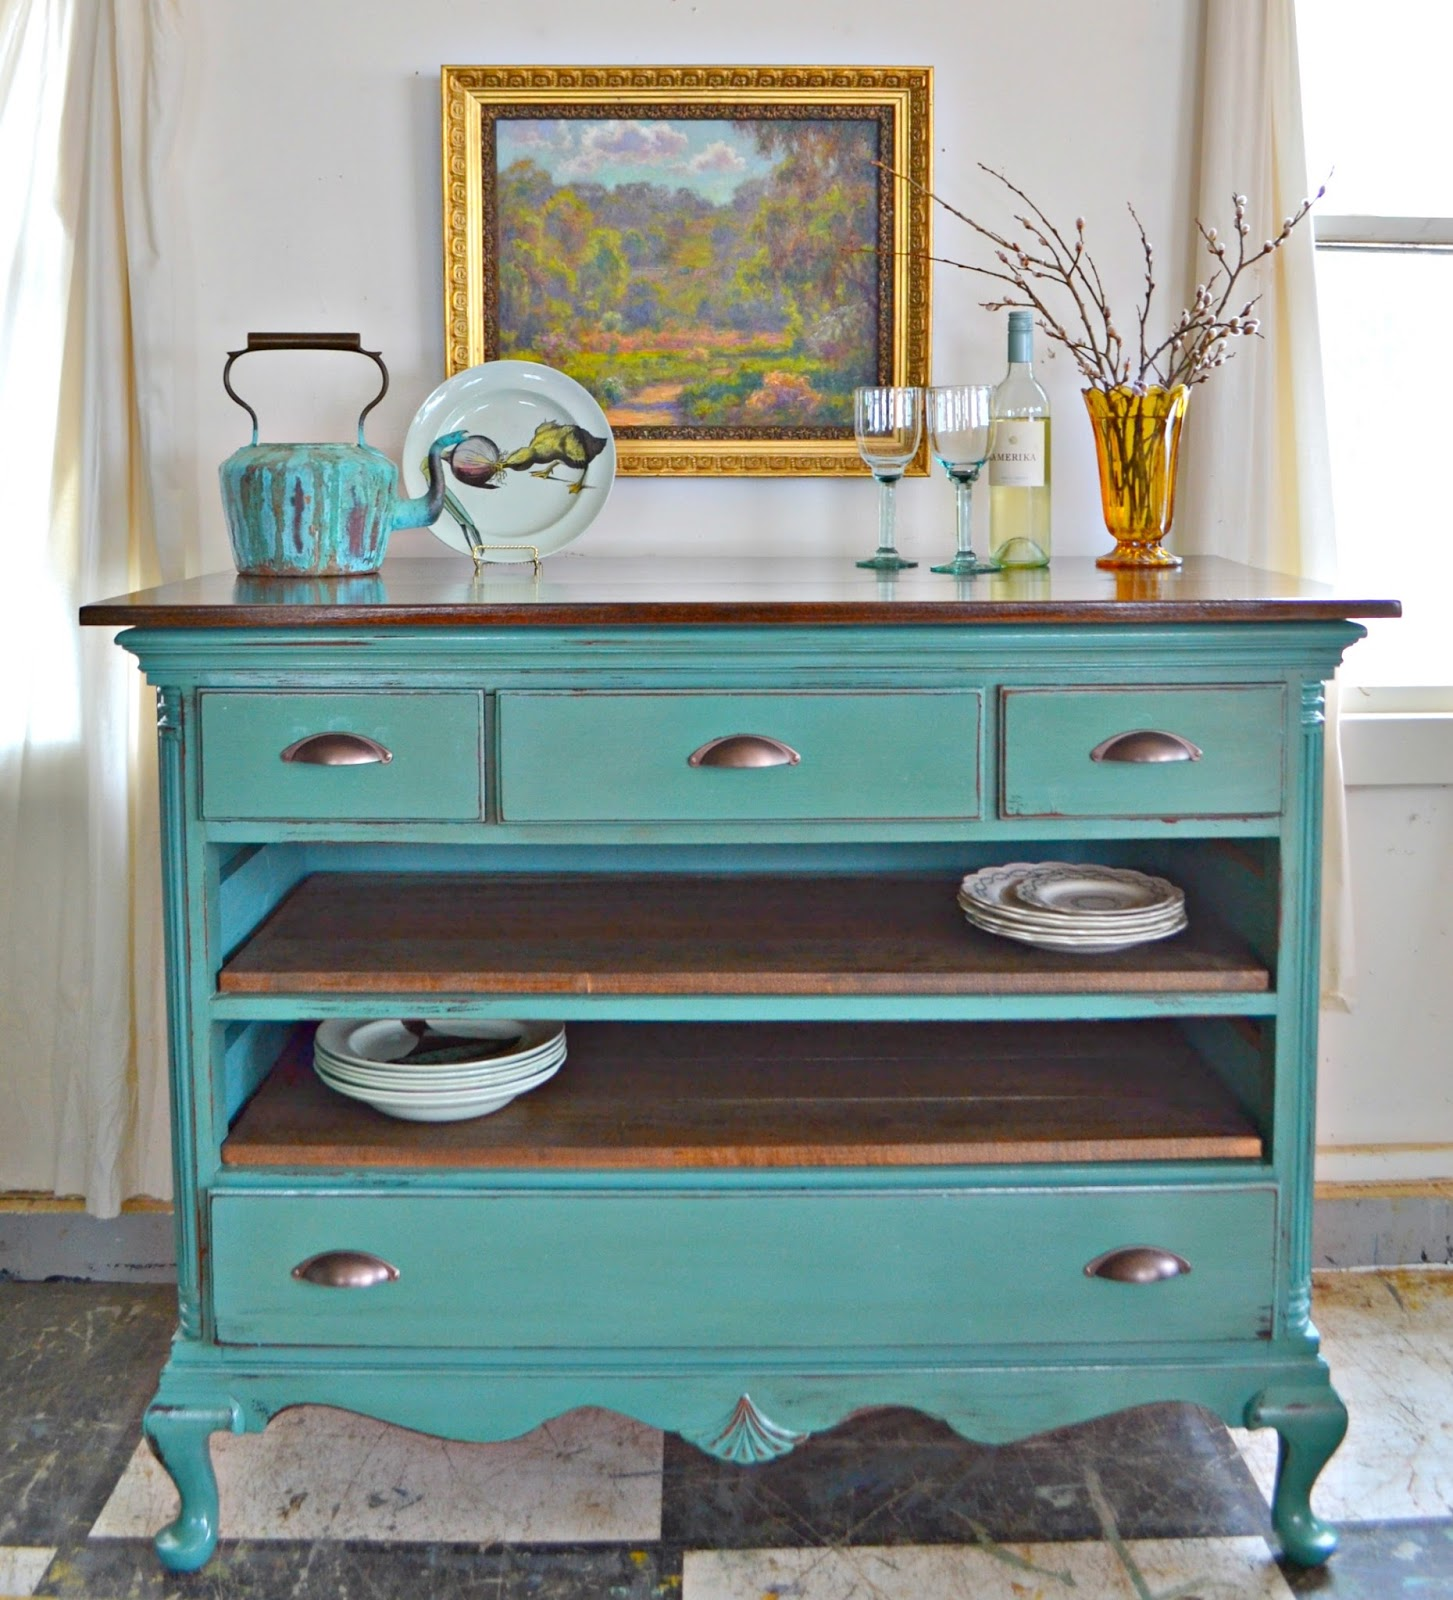 Heir and Space: A Vintage Mahogany Dresser Turned Kitchen Island